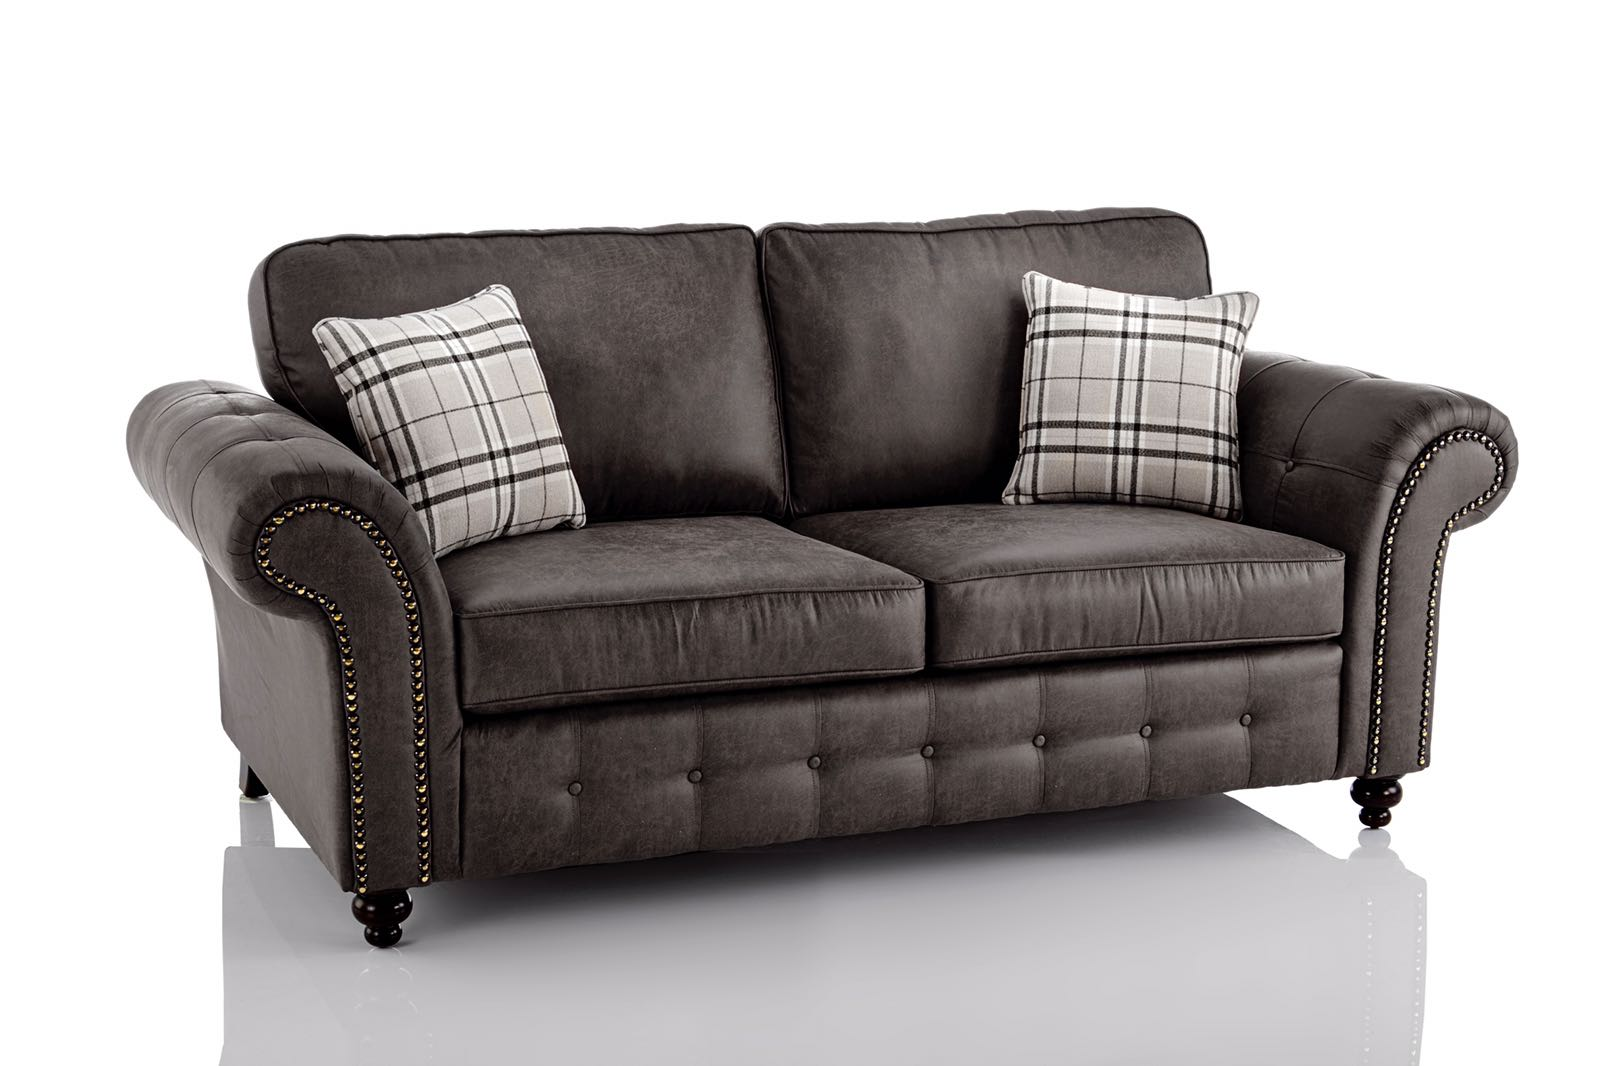 Oakland Faux Leather 3 and 2 Seater Sofa Combo in Black  Just Sit On It